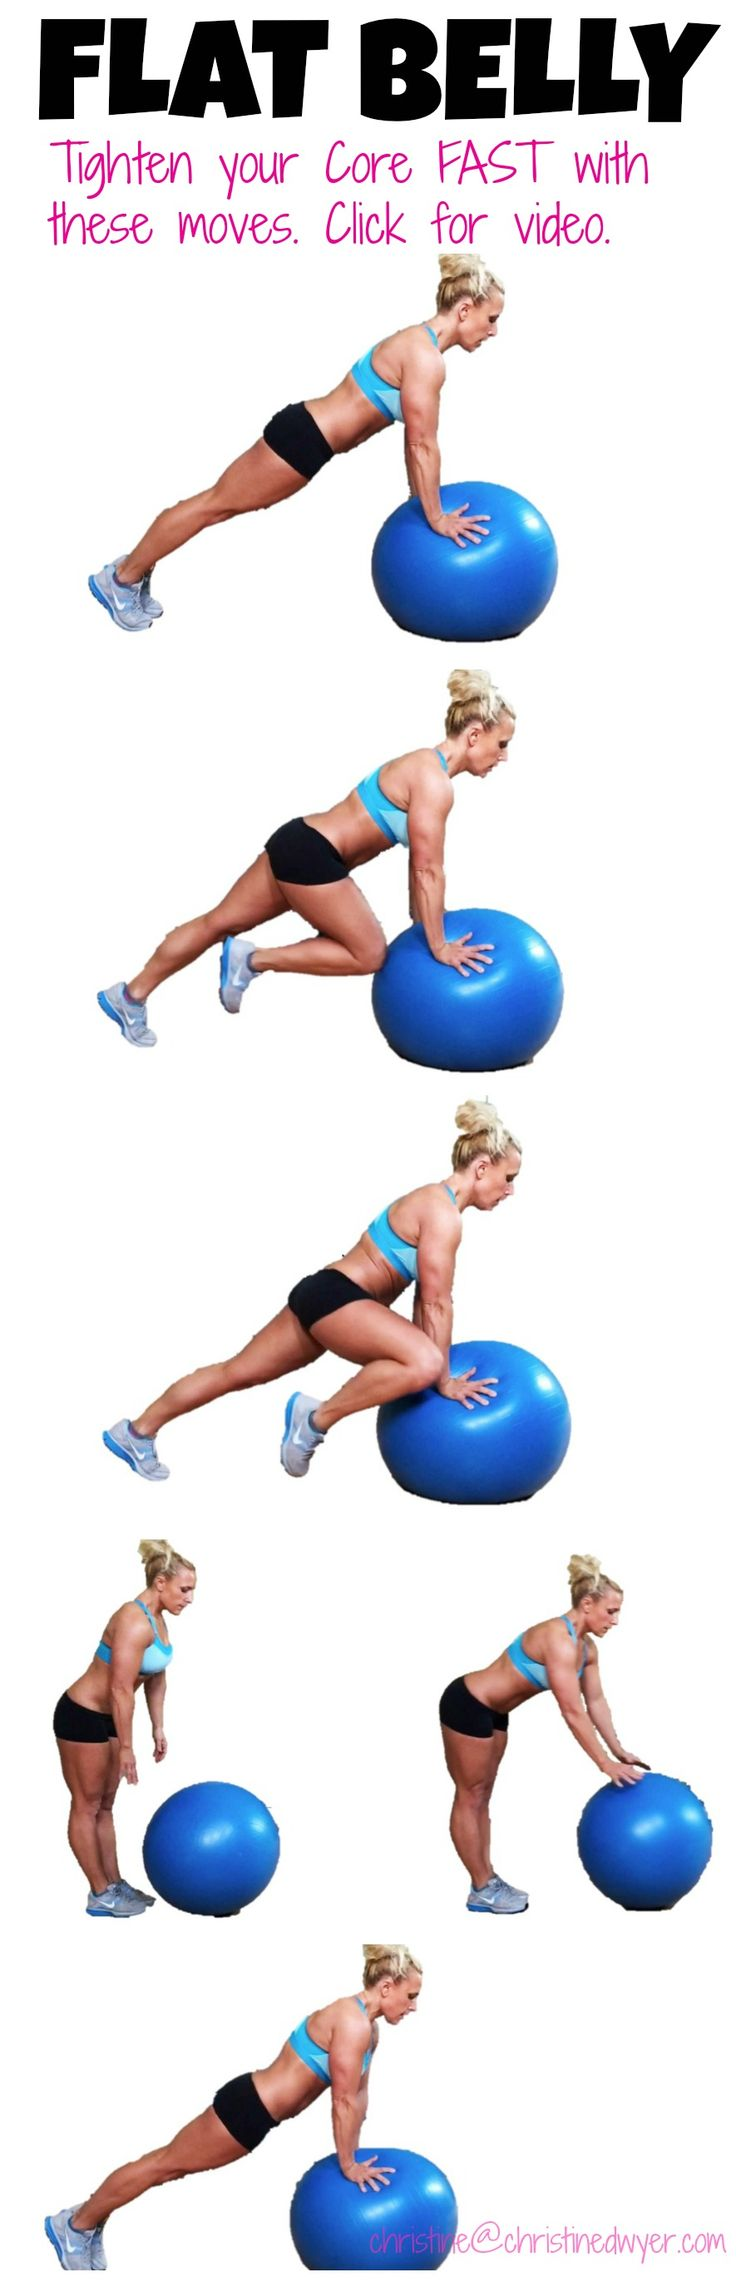 Real time: Slow isn't always a bad thing!  These moves work the upper body in isometric contraction, which means the muscles are firing to work, but not moving. ✨✨ The core has to fight for balance as you slowly change knees.